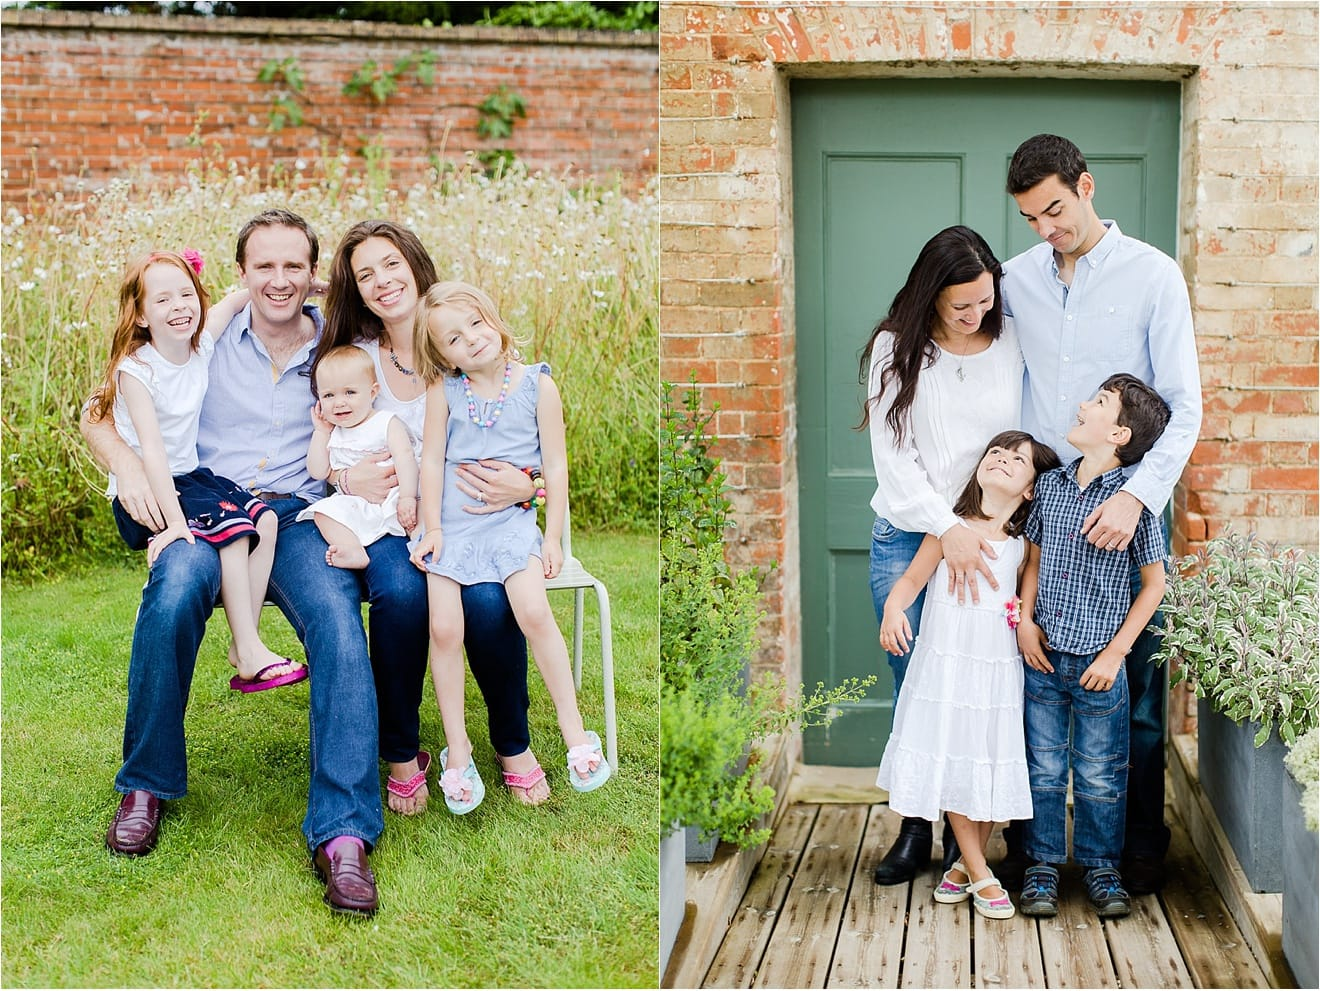 family-photography-surrey-eddie-judd-photographer-mini-sessions-cobham-medicine-garden_0023